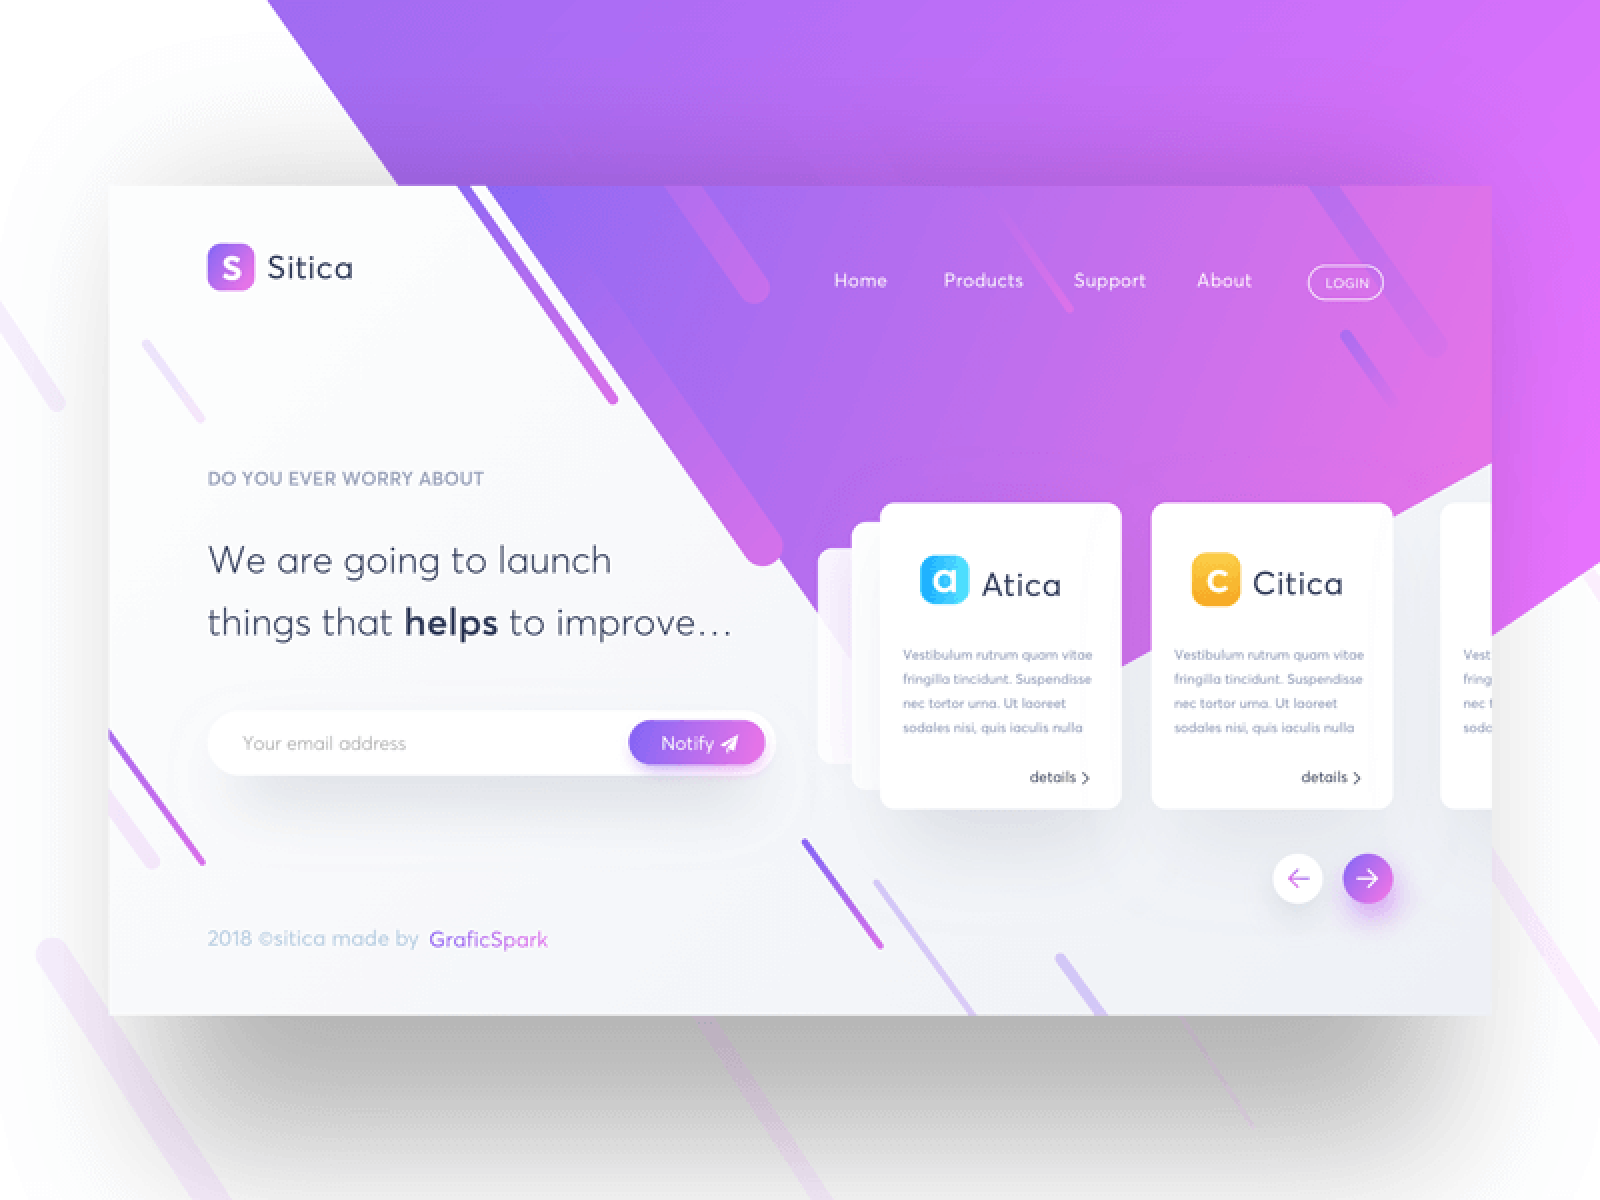 Freebie - Sitica Landing Page Concept #2 cover image